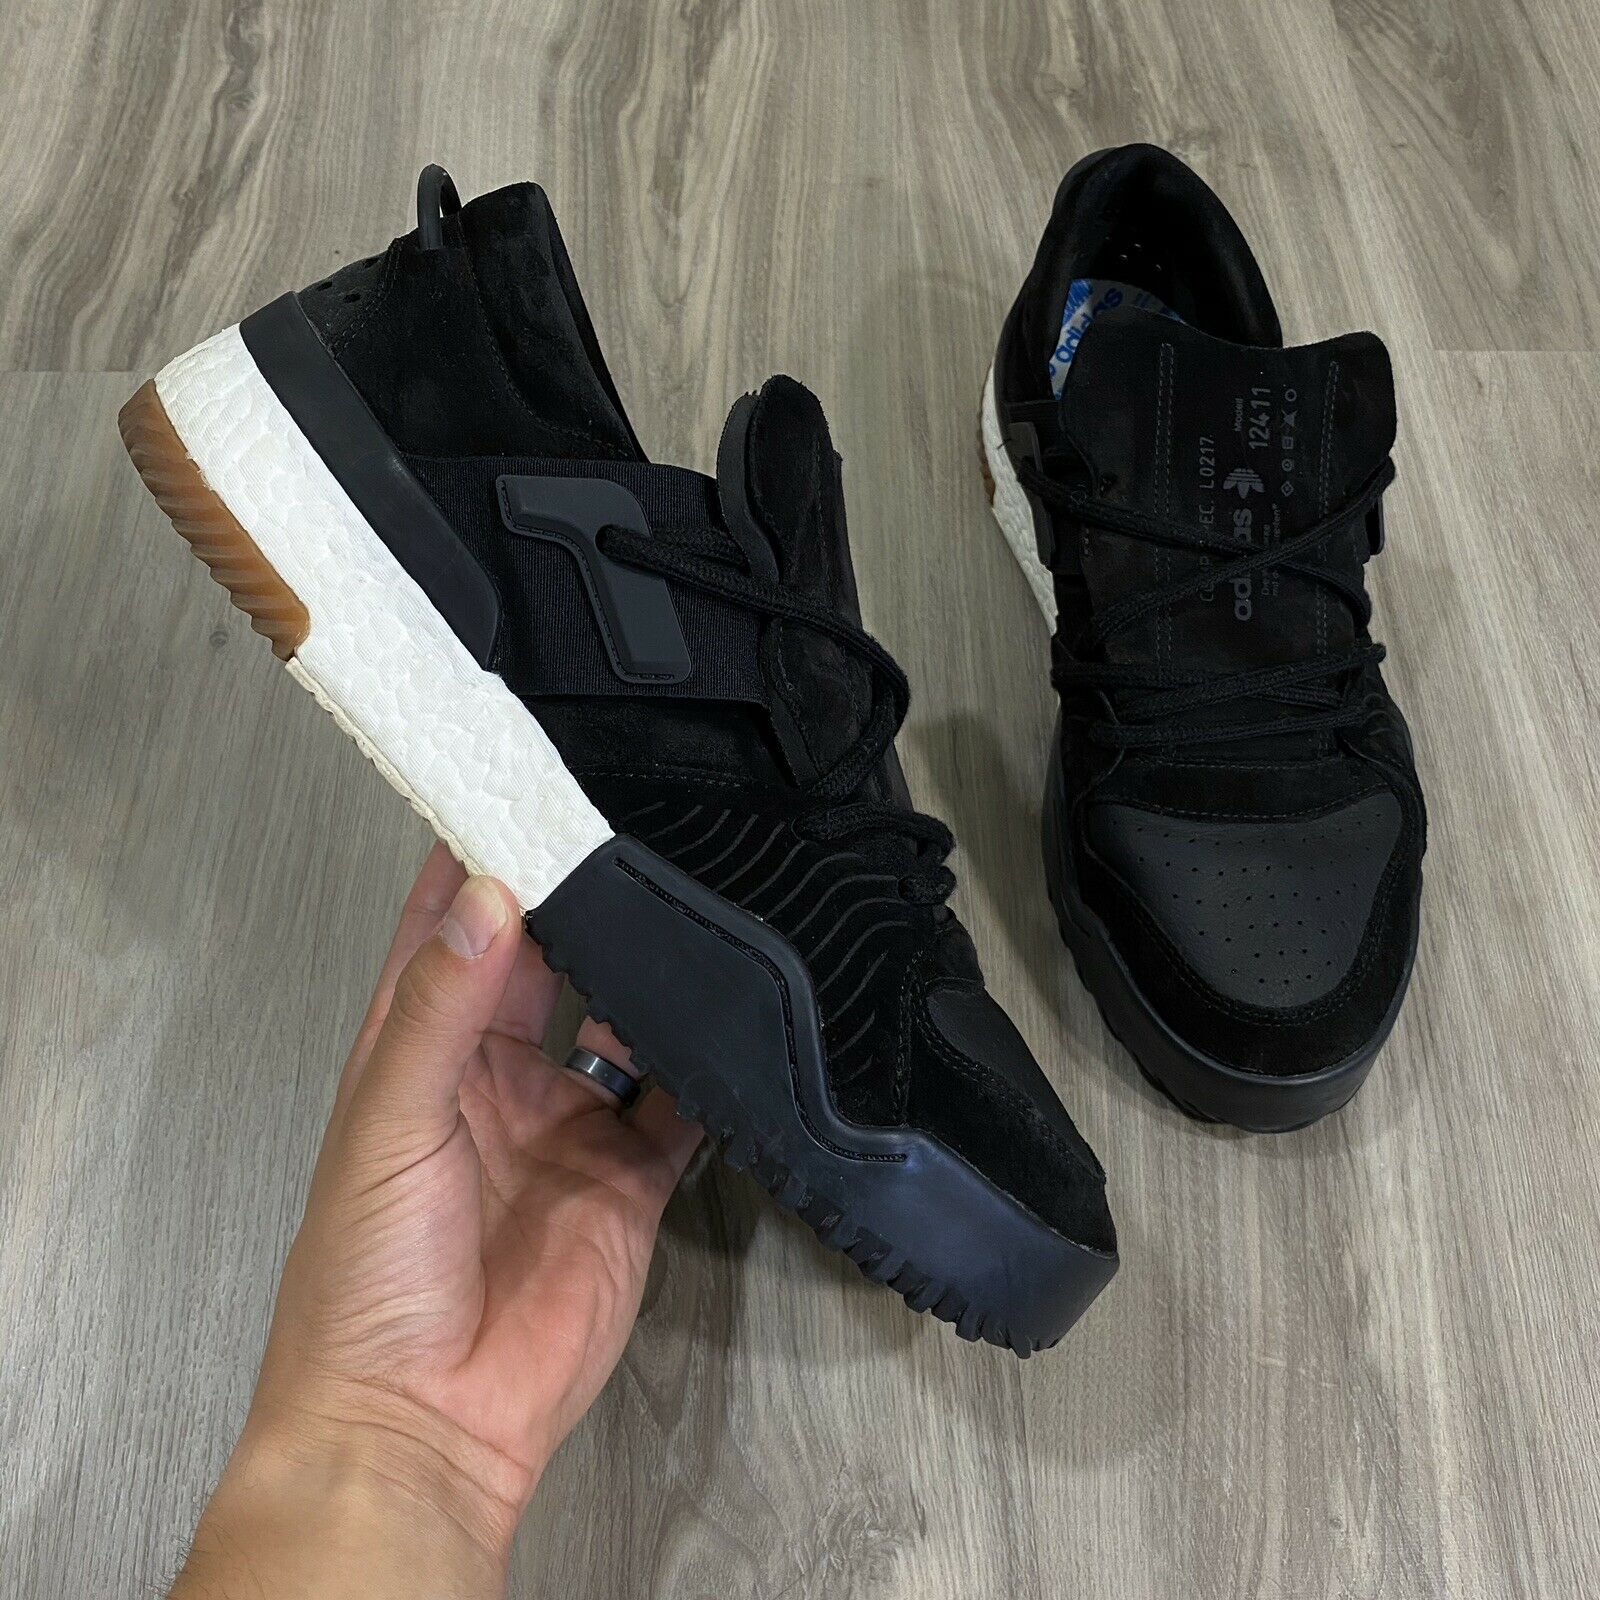 Agacharse Escupir absorción  adidas AW Bball Lo 27.0cm AC6847 SNEAKERS for sale online | eBay